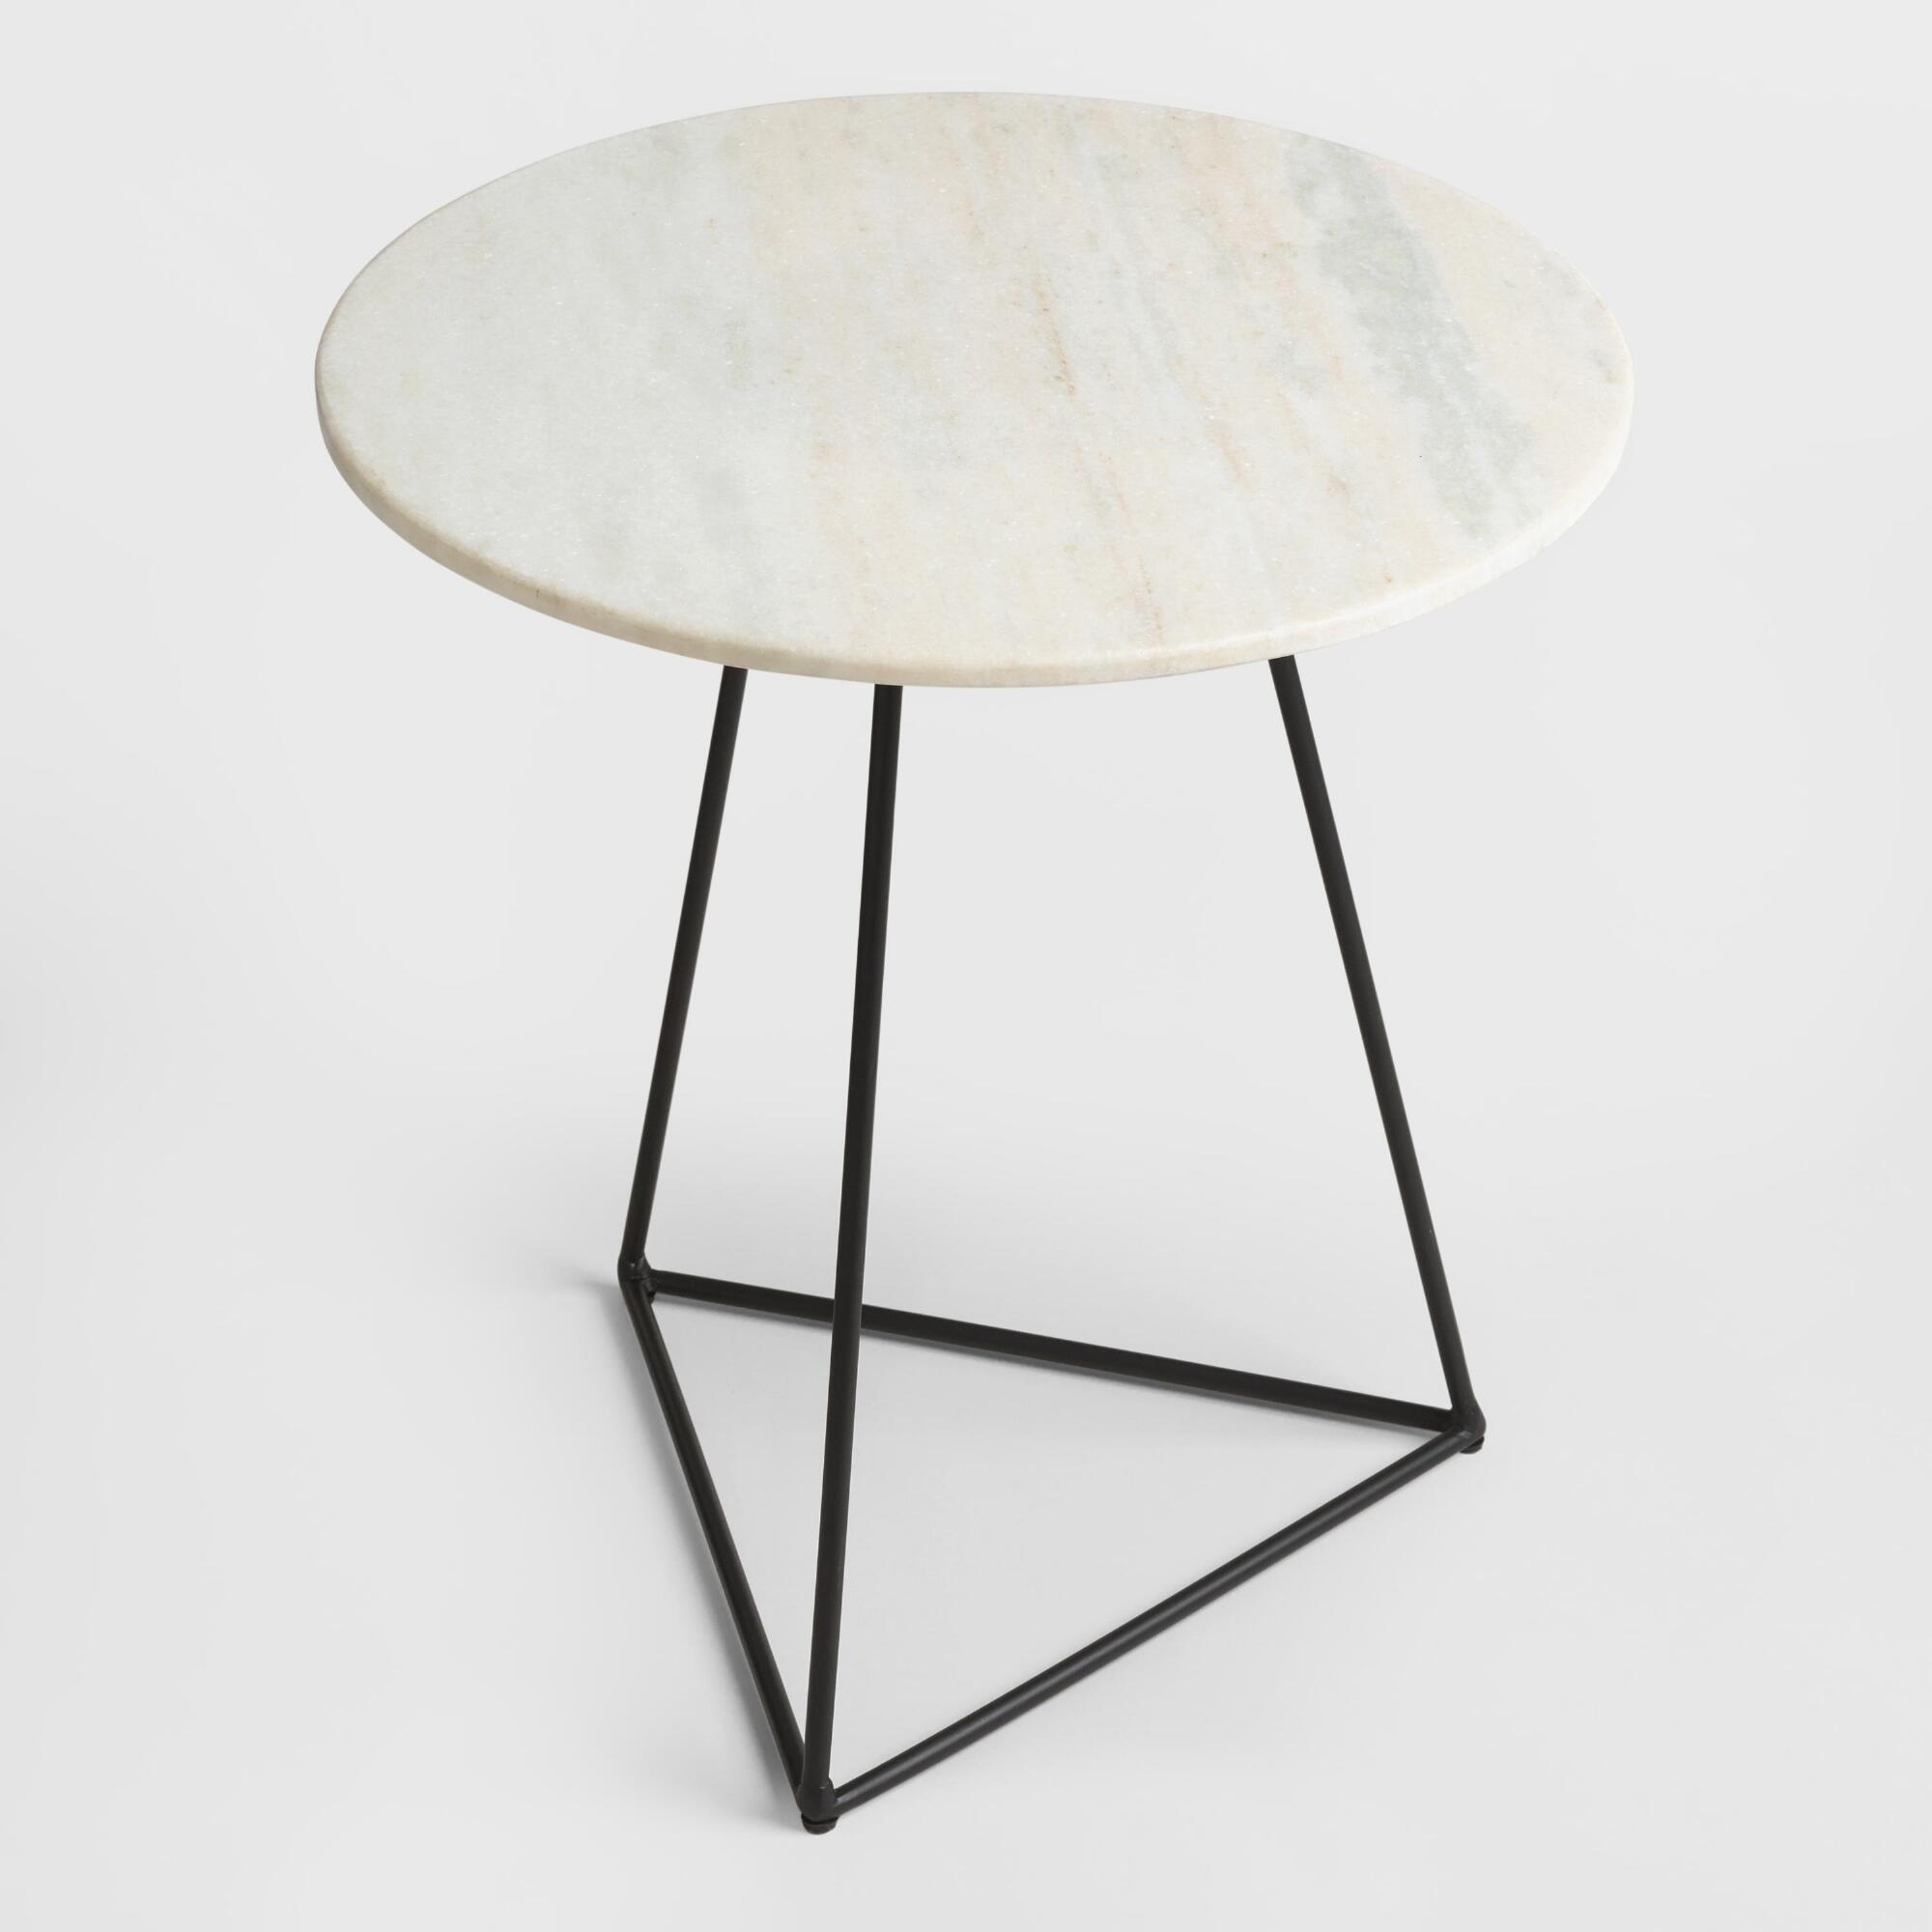 white marble and metal round accent table world market products black kmart furniture bedroom counter high dining room sets lamps under ethan allen top bar height chairs chair